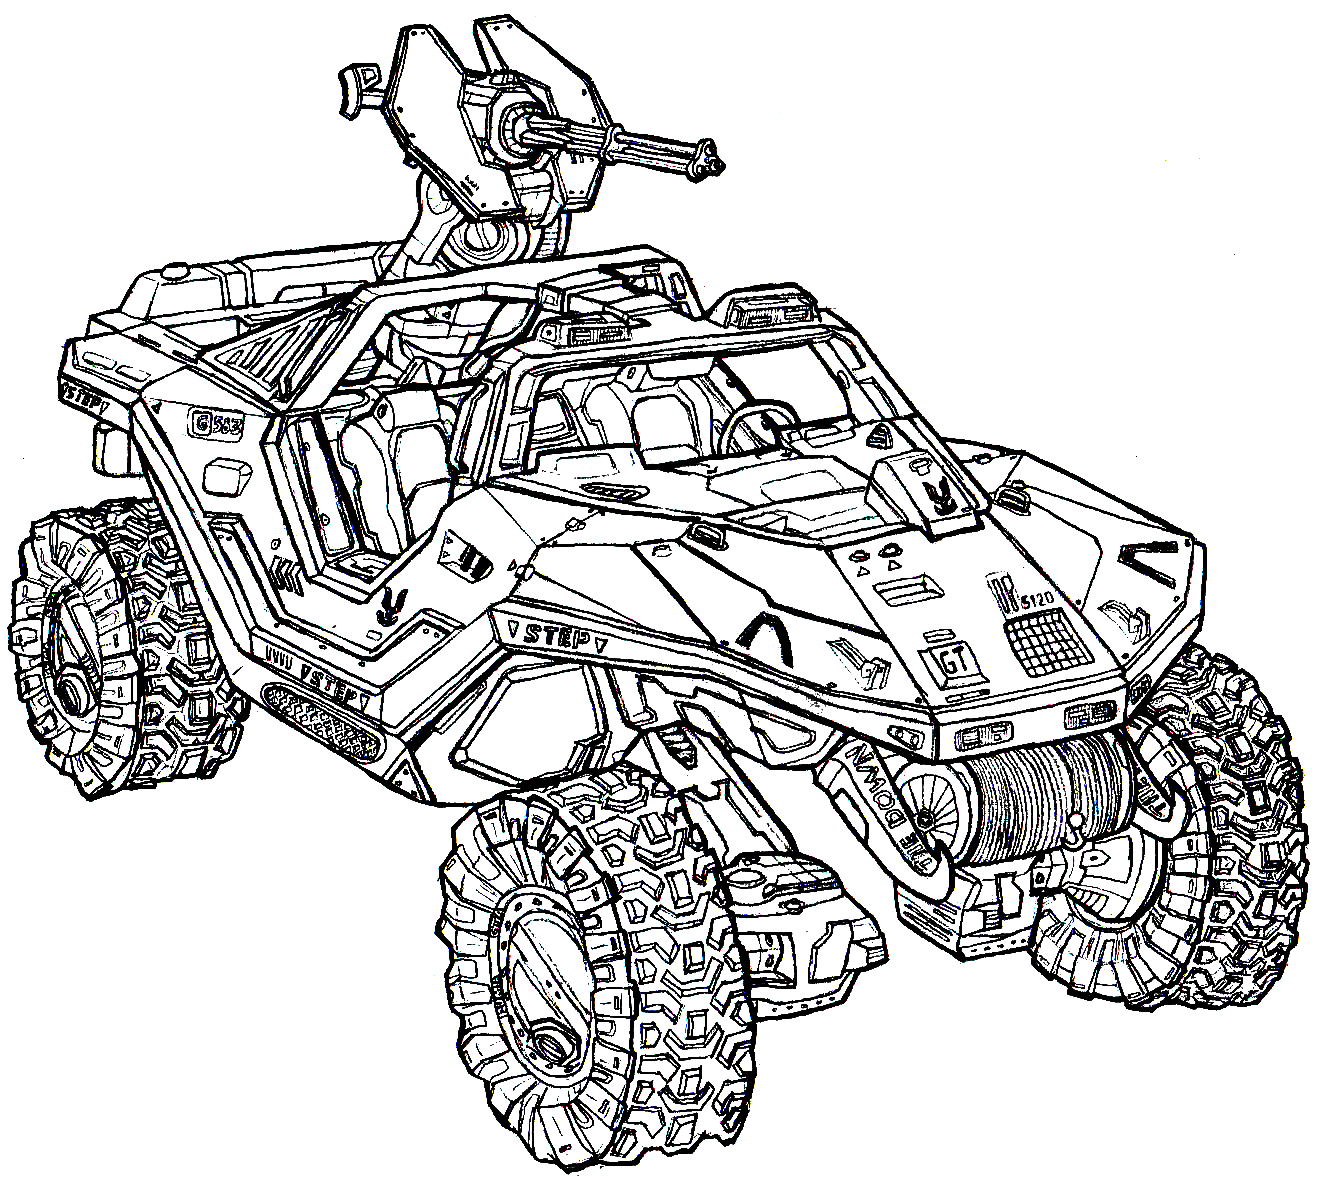 Halo 5 Coloring Pages Halo Coloring Pages Halo 5 Coloring Pictures